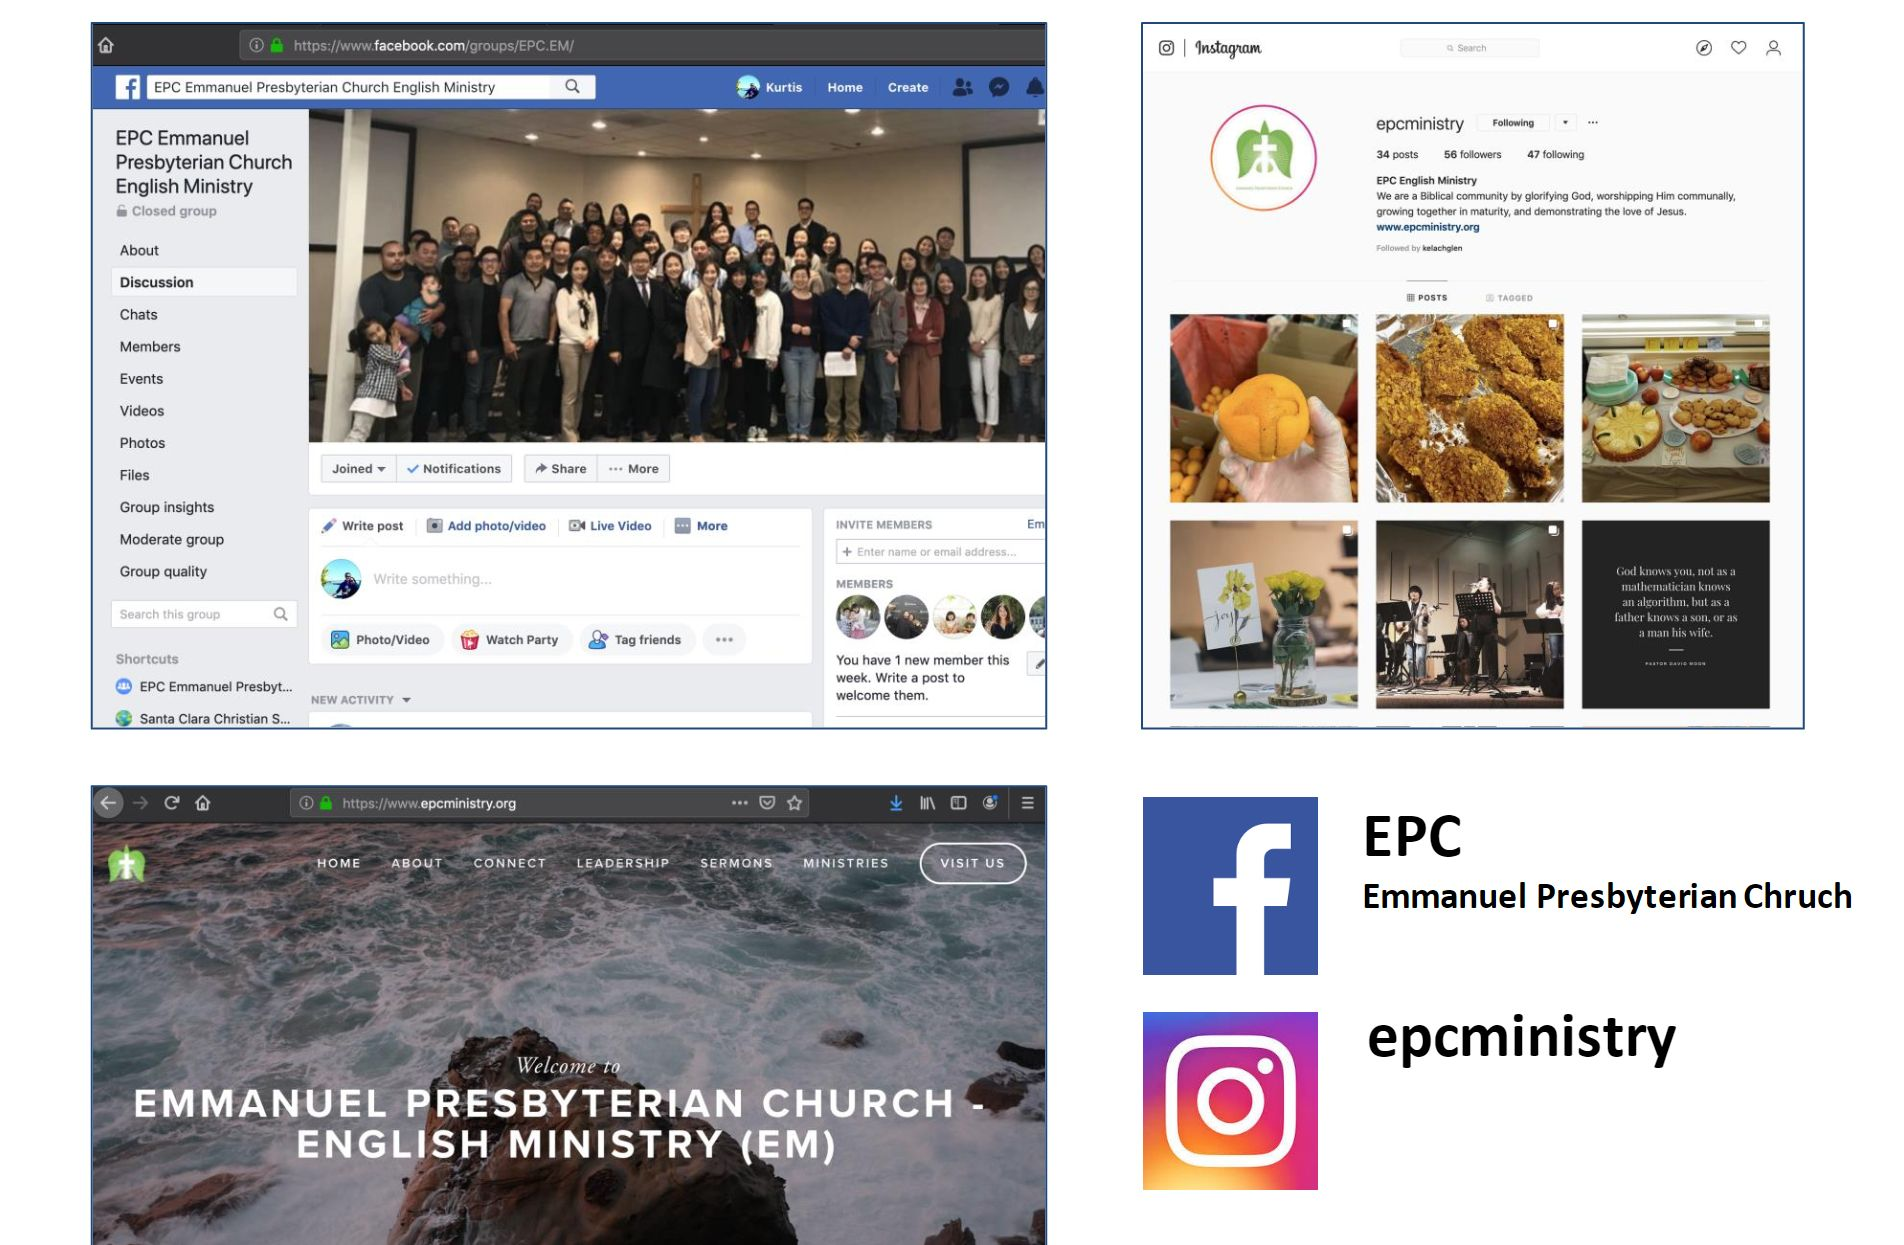 Follow us on social media! You can find the latest announcements and messages on our Facebook page at  https://www.facebook.com/groups/EPC.EM/  or Instagram at  https://www.instagram.com/epcministry/